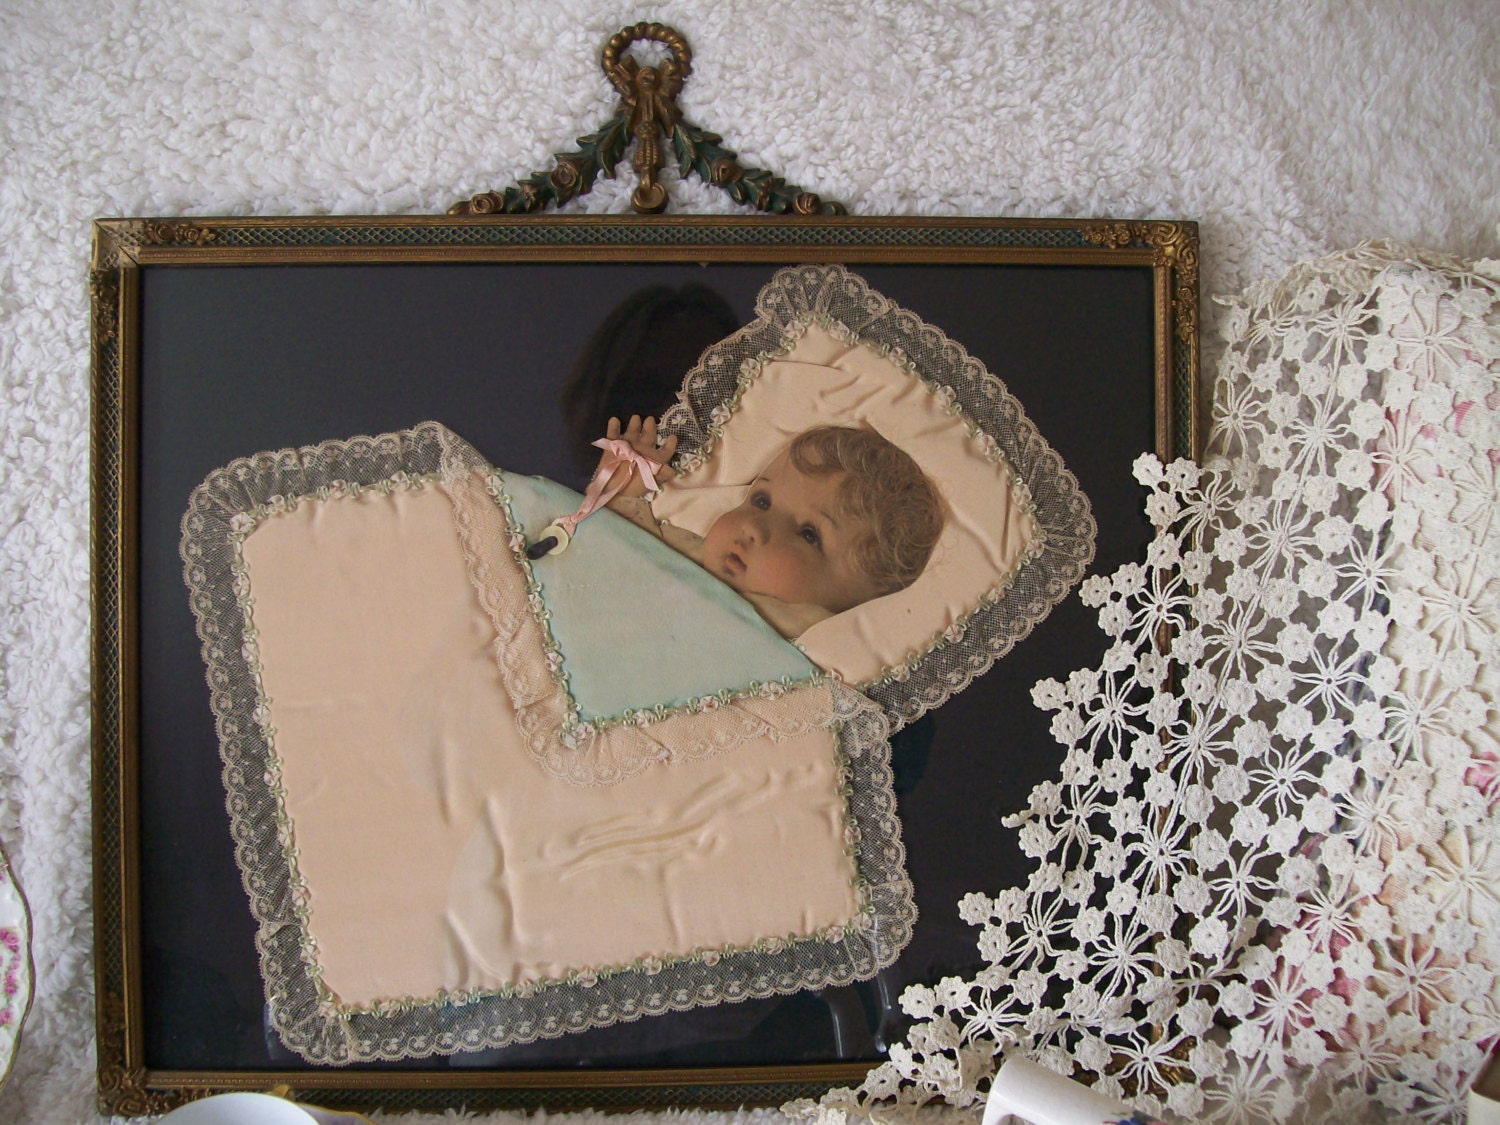 Victorian Ribbon And Hair Art Baby Picture Ornate Frame On